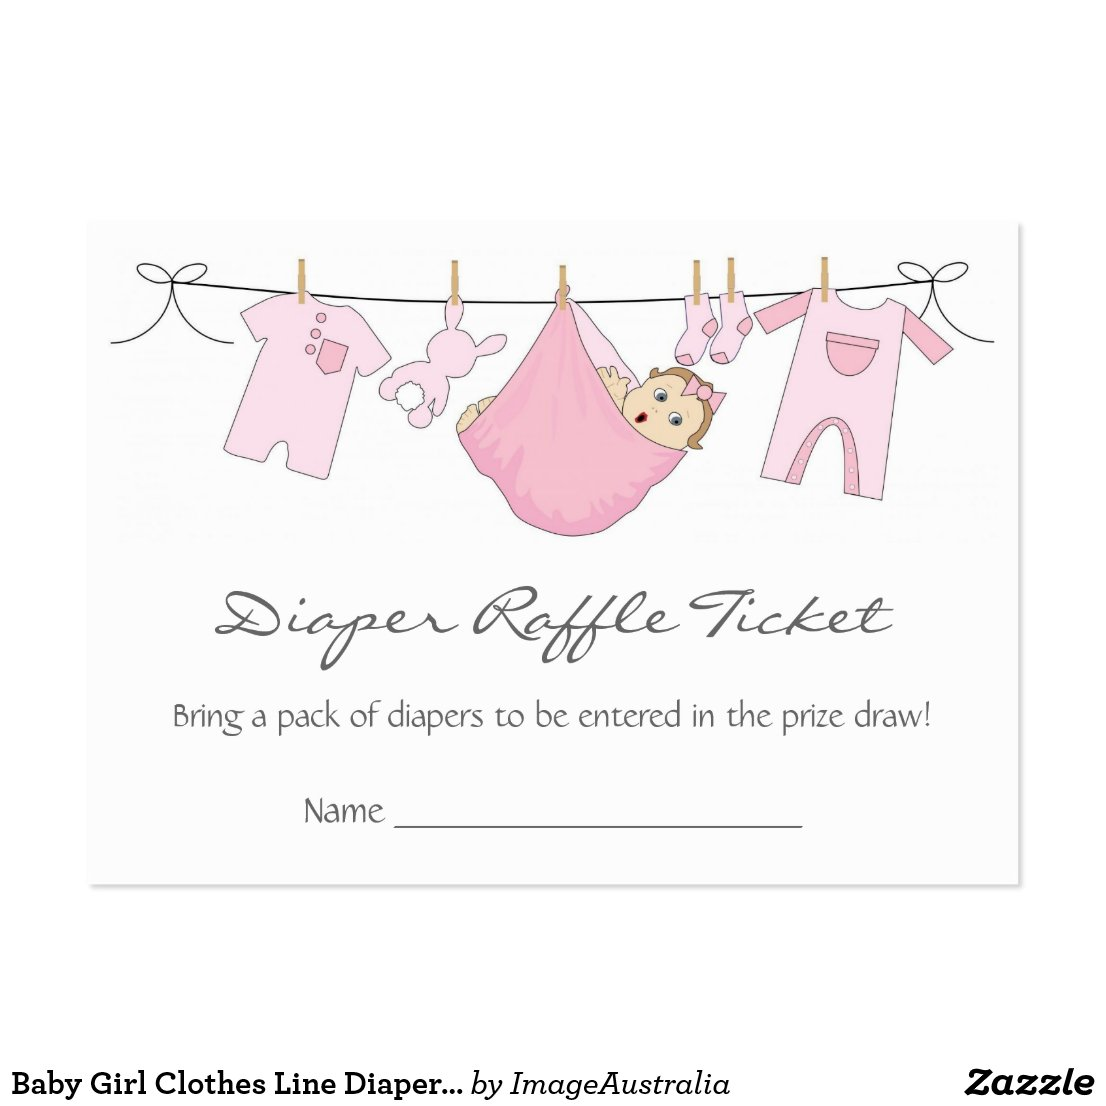 Baby clothes line business plan